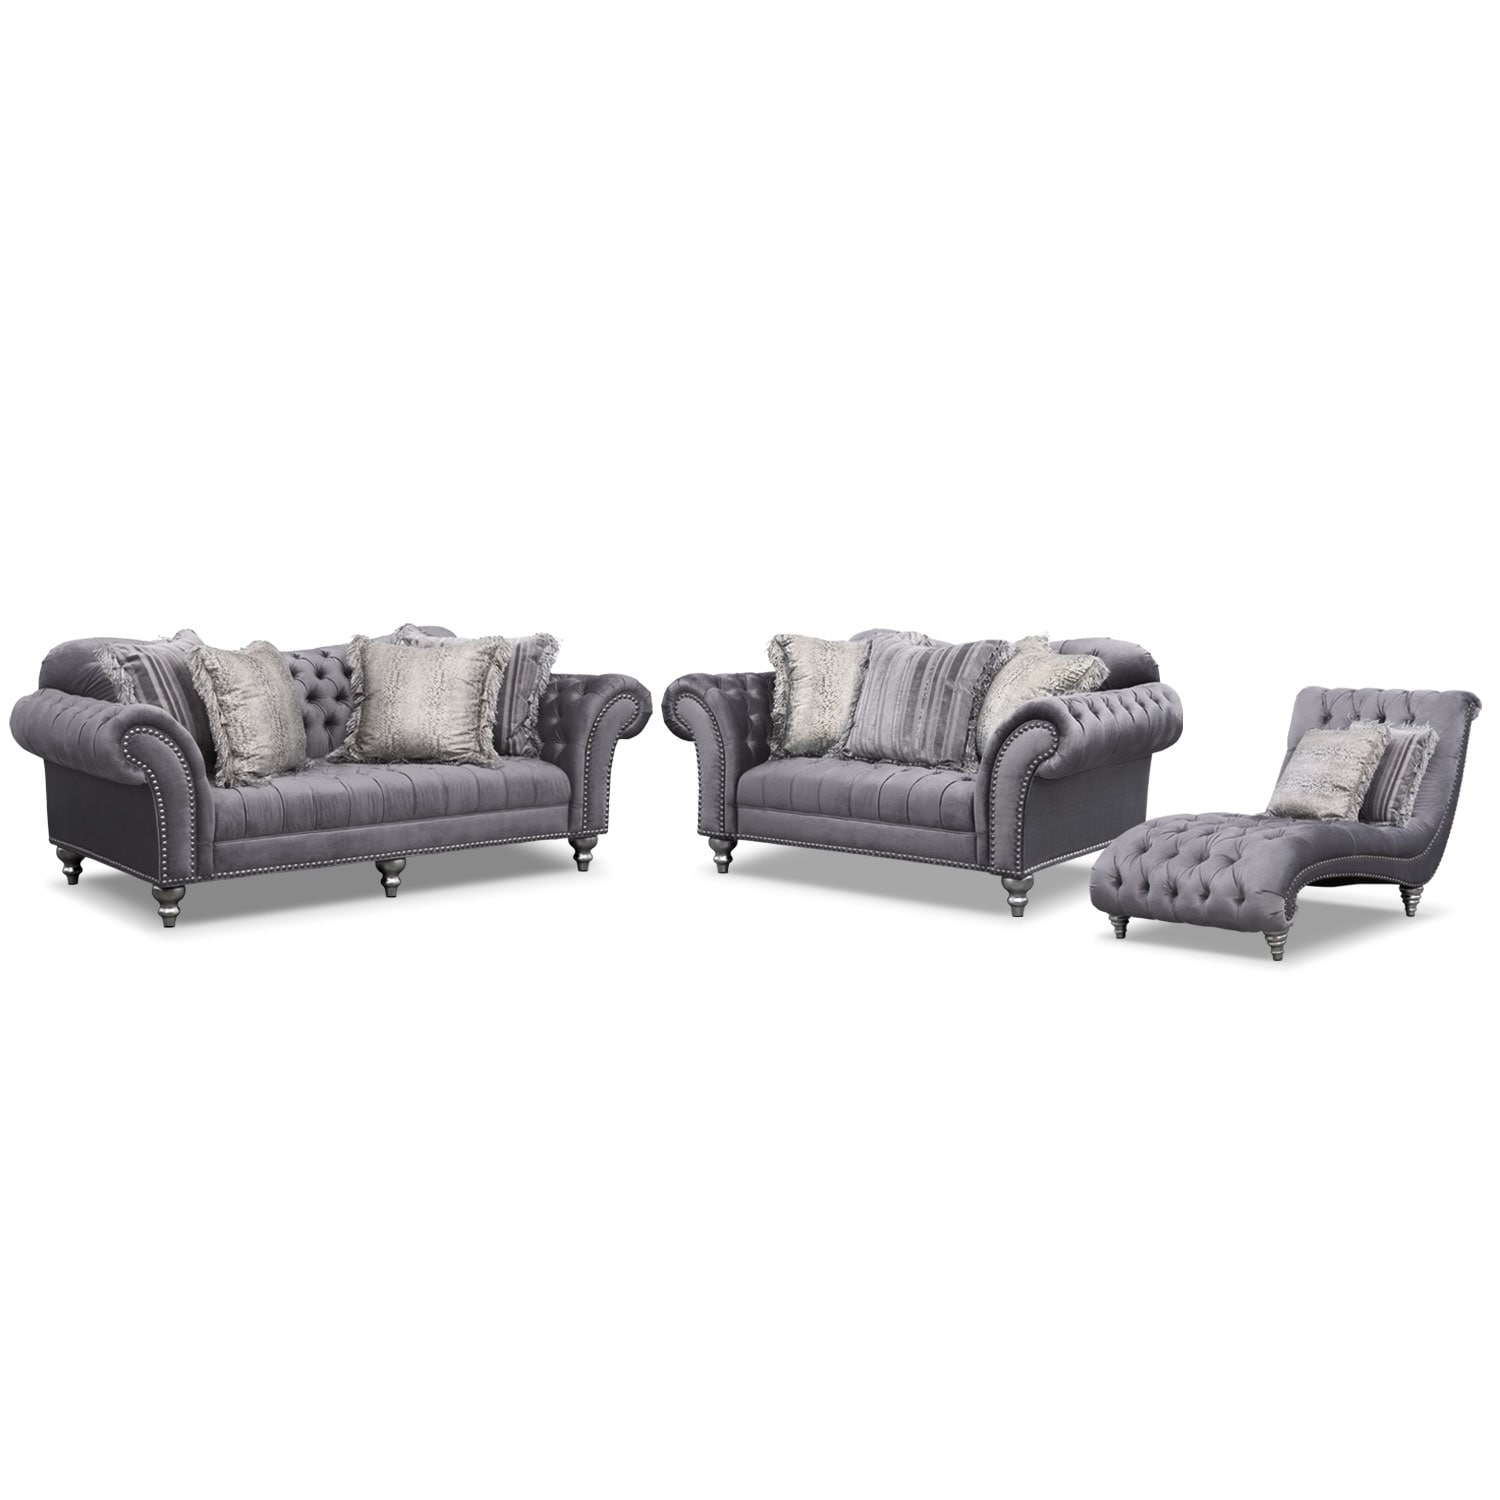 Living Room Furniture - Brittney Sofa, Loveseat and Chaise Set - Gray